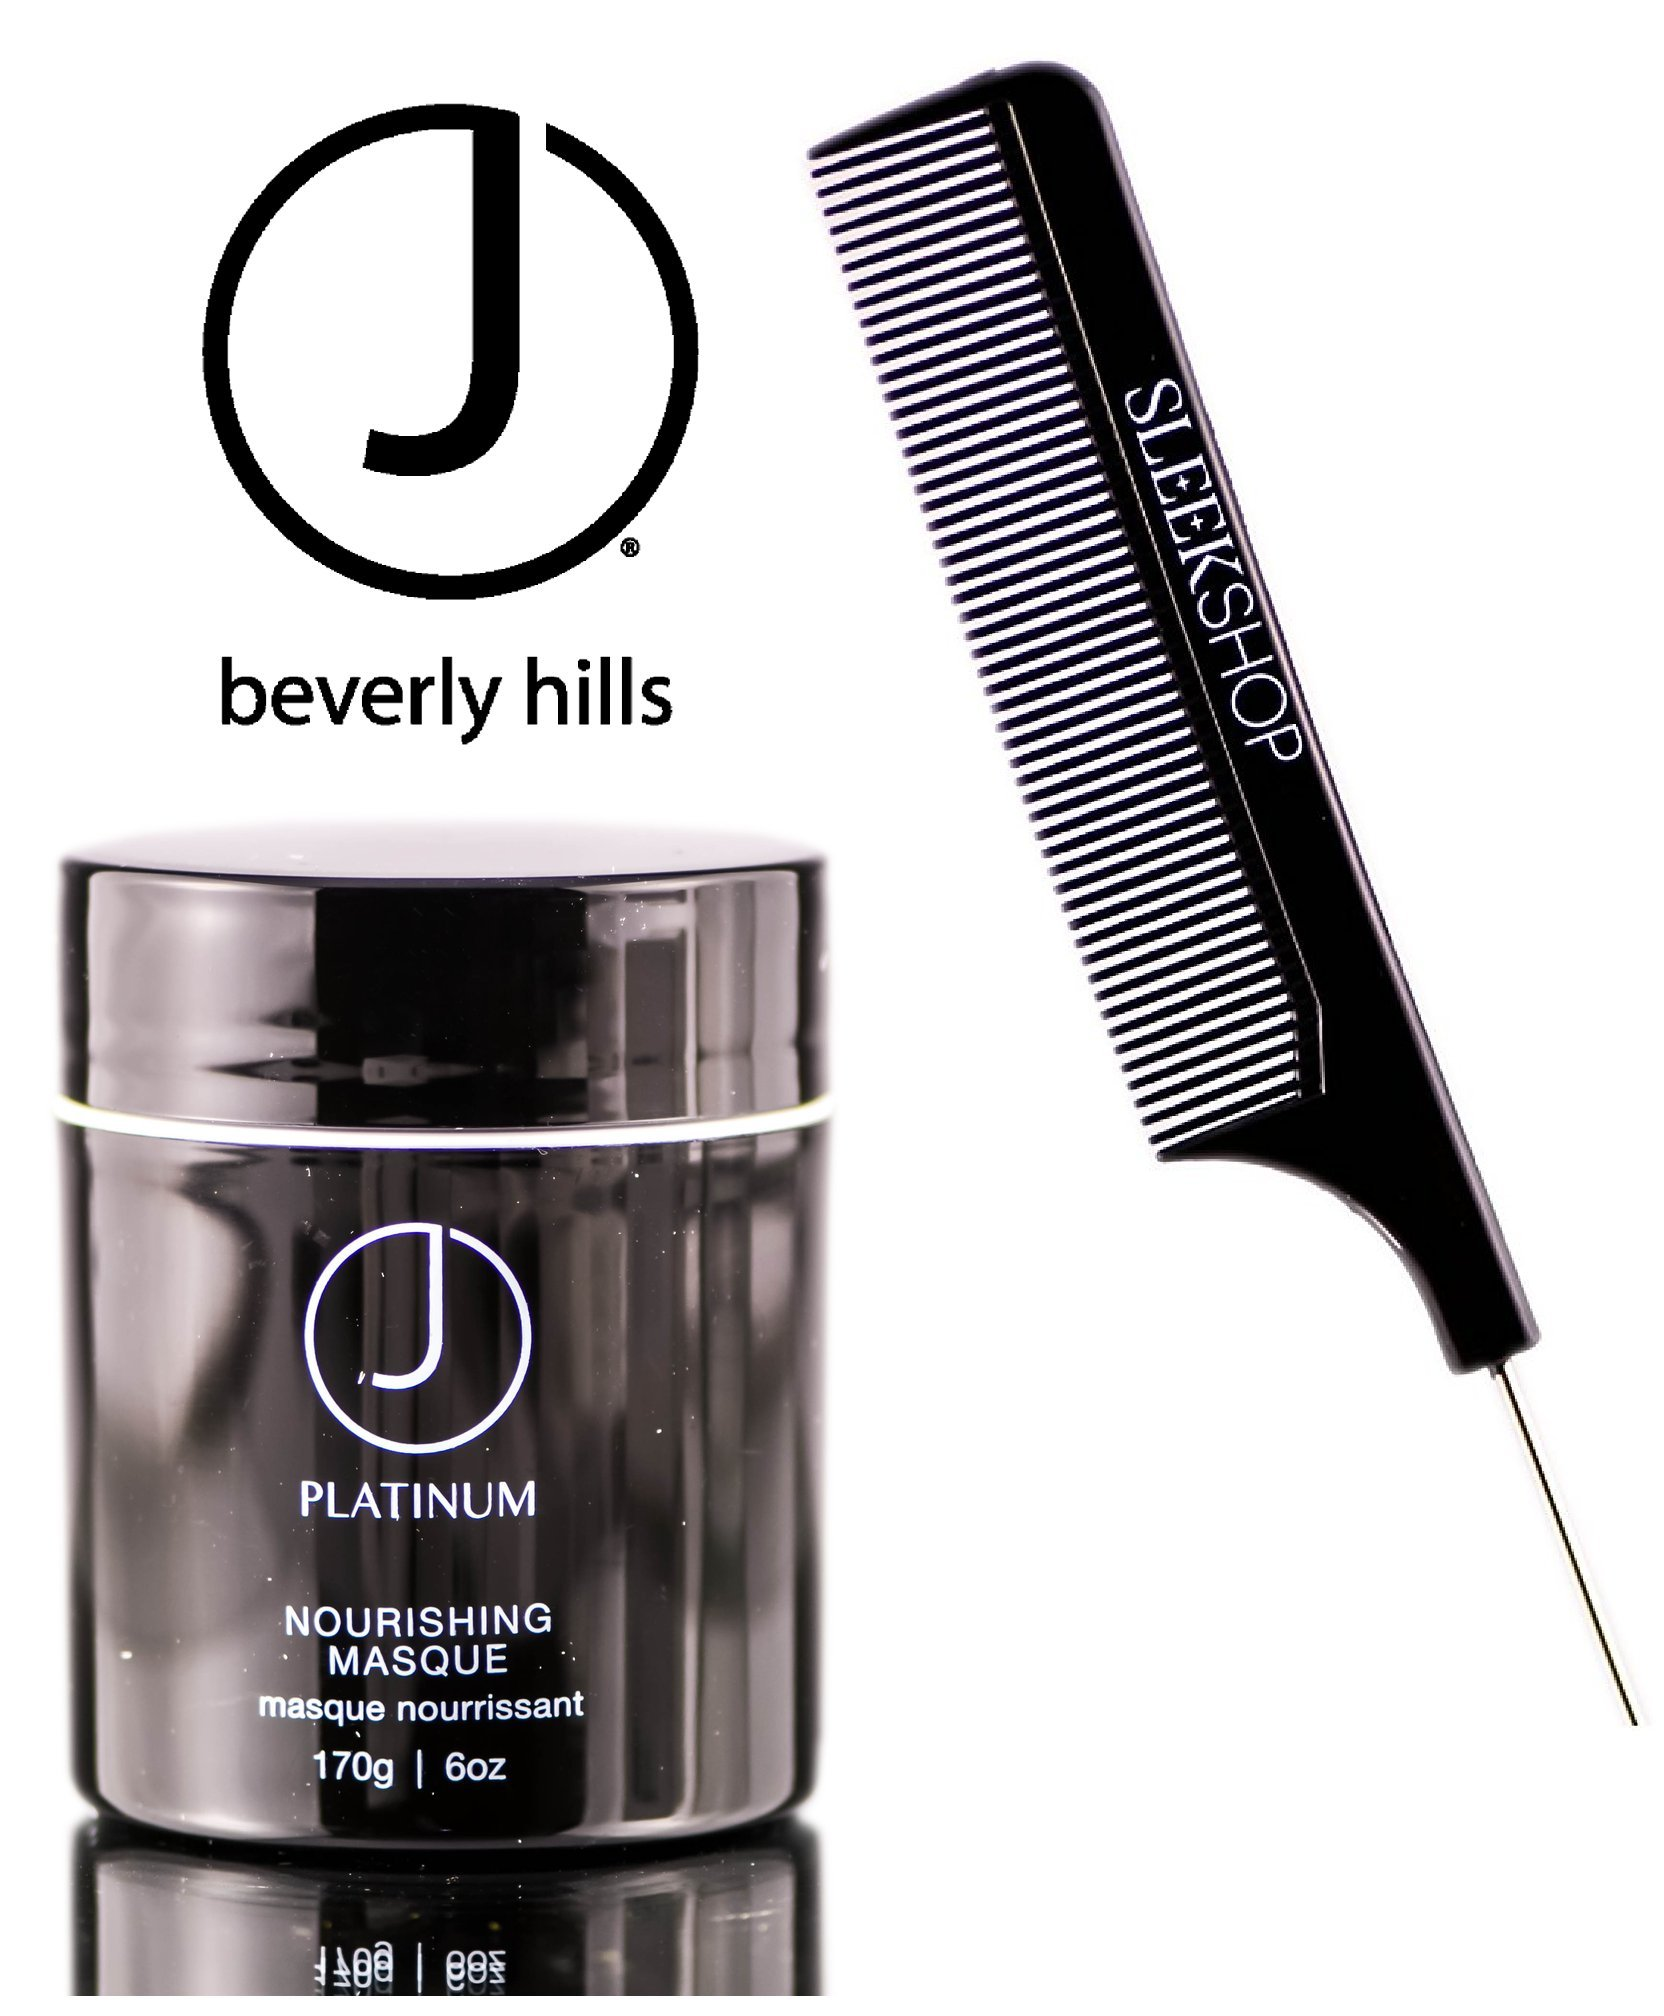 J Beverly Hills Platinum Nourishing Masque (with Sleek Steel Pin Tail Comb) (6 oz / 170 g - retail size) by J Beverly Hills